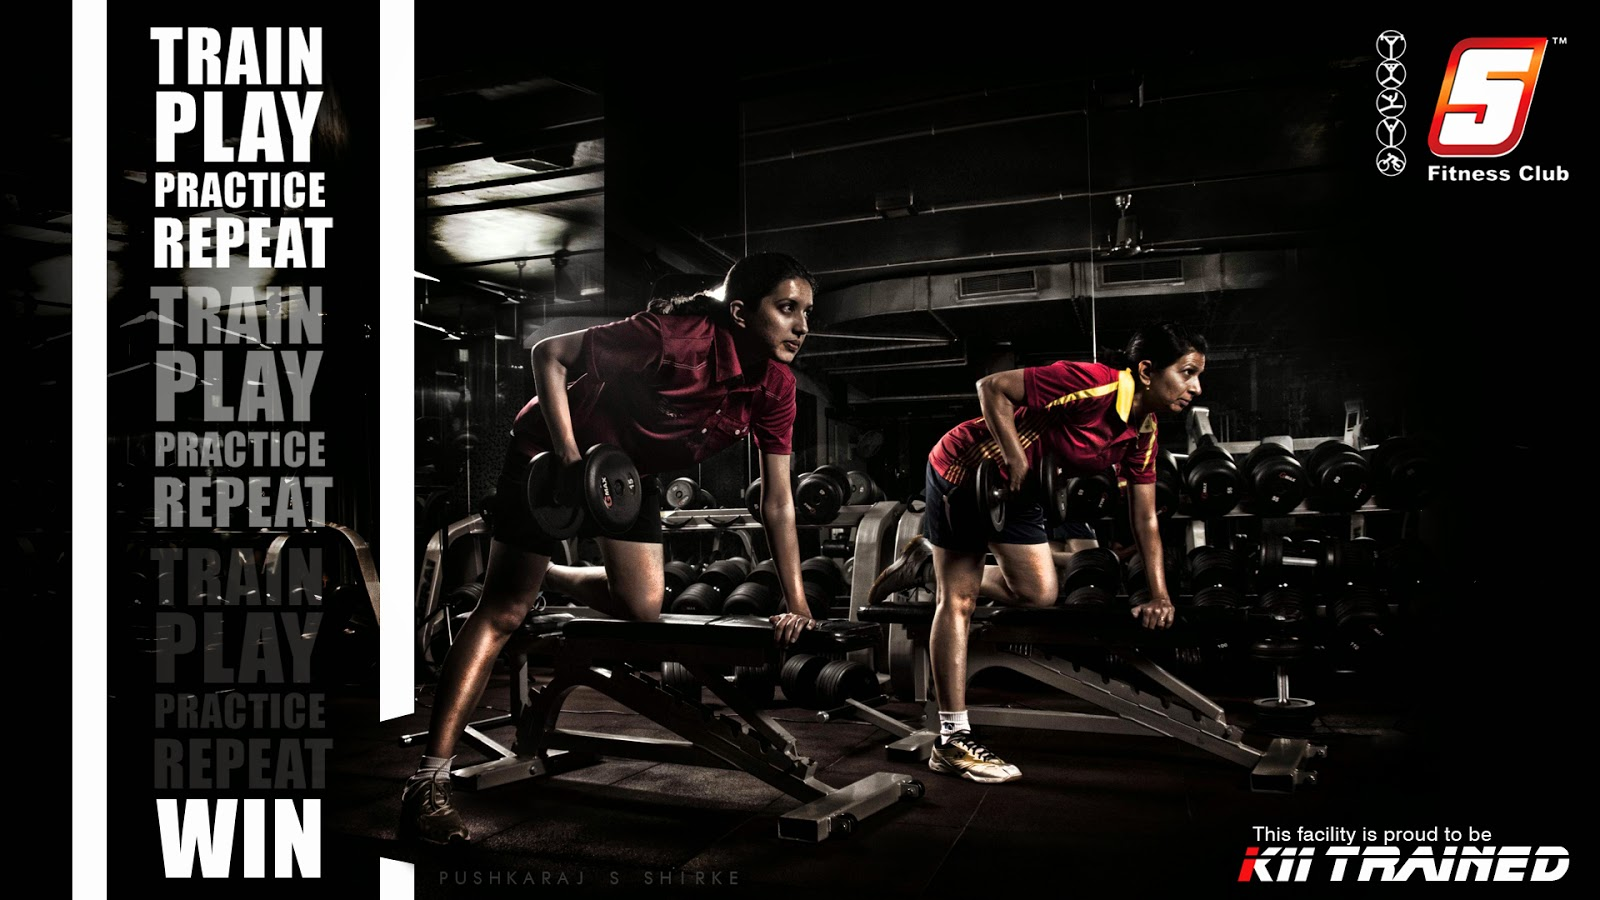 Pushkaraj s shirke 5 fitness club poster campaign for Gym fitness